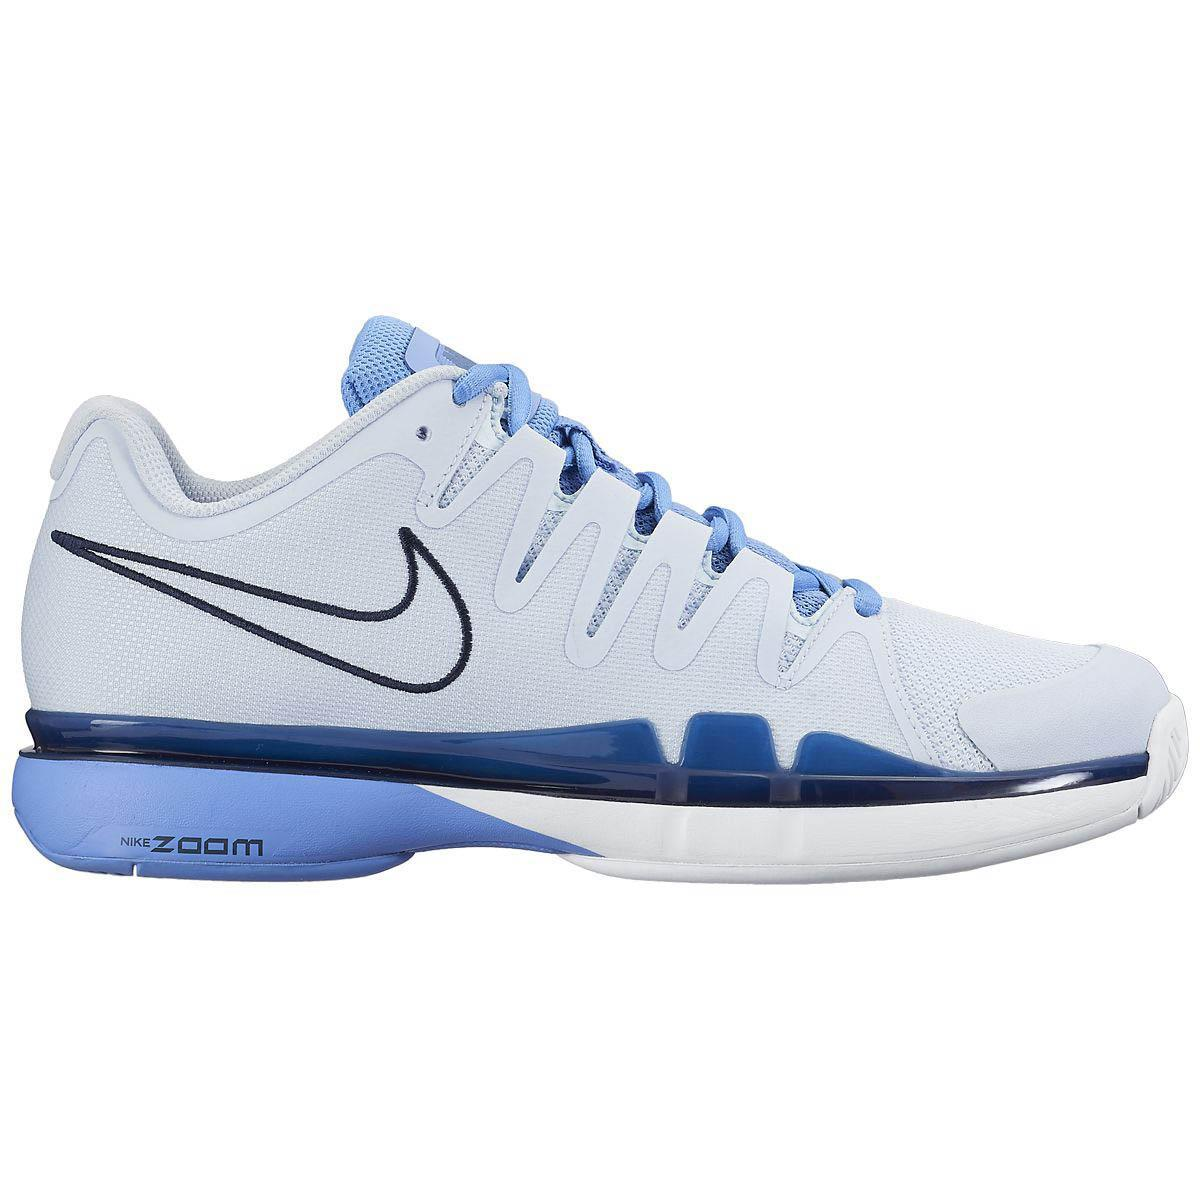 Blue Nike Tennis Shoes Sizes For Kids